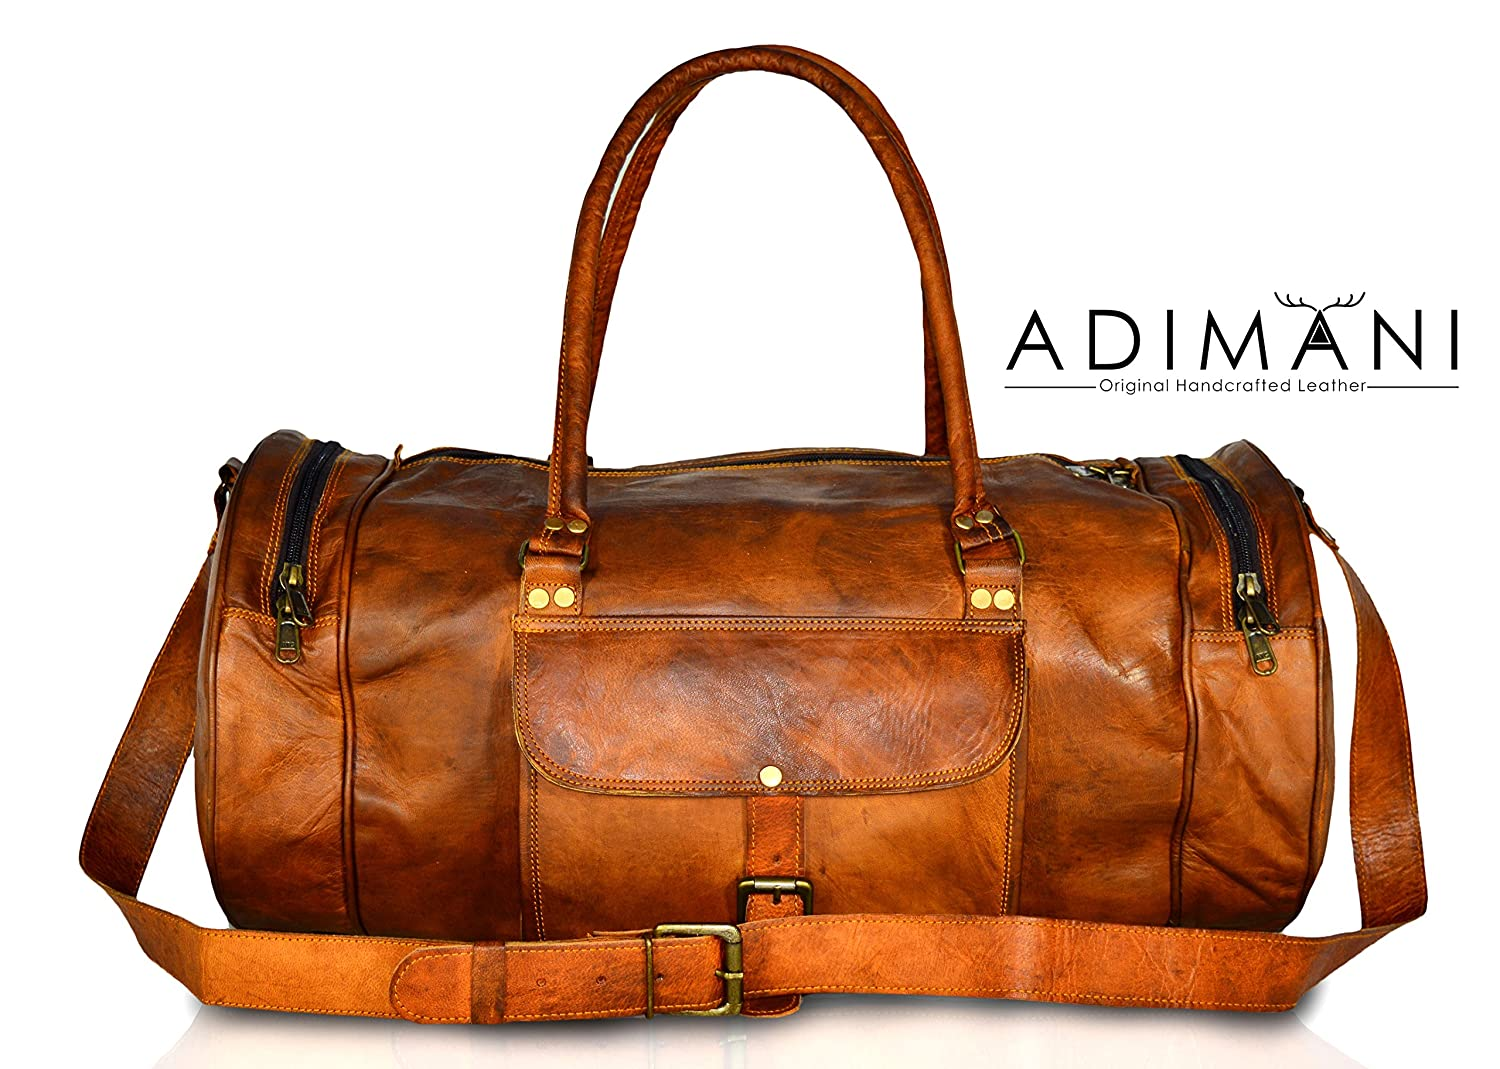 06a59b96ae5 Adimani Vintage Leather Gym Workout Travel Weekend Bag For Men - Brown  (X-Large)  Amazon.in  Bags, Wallets   Luggage